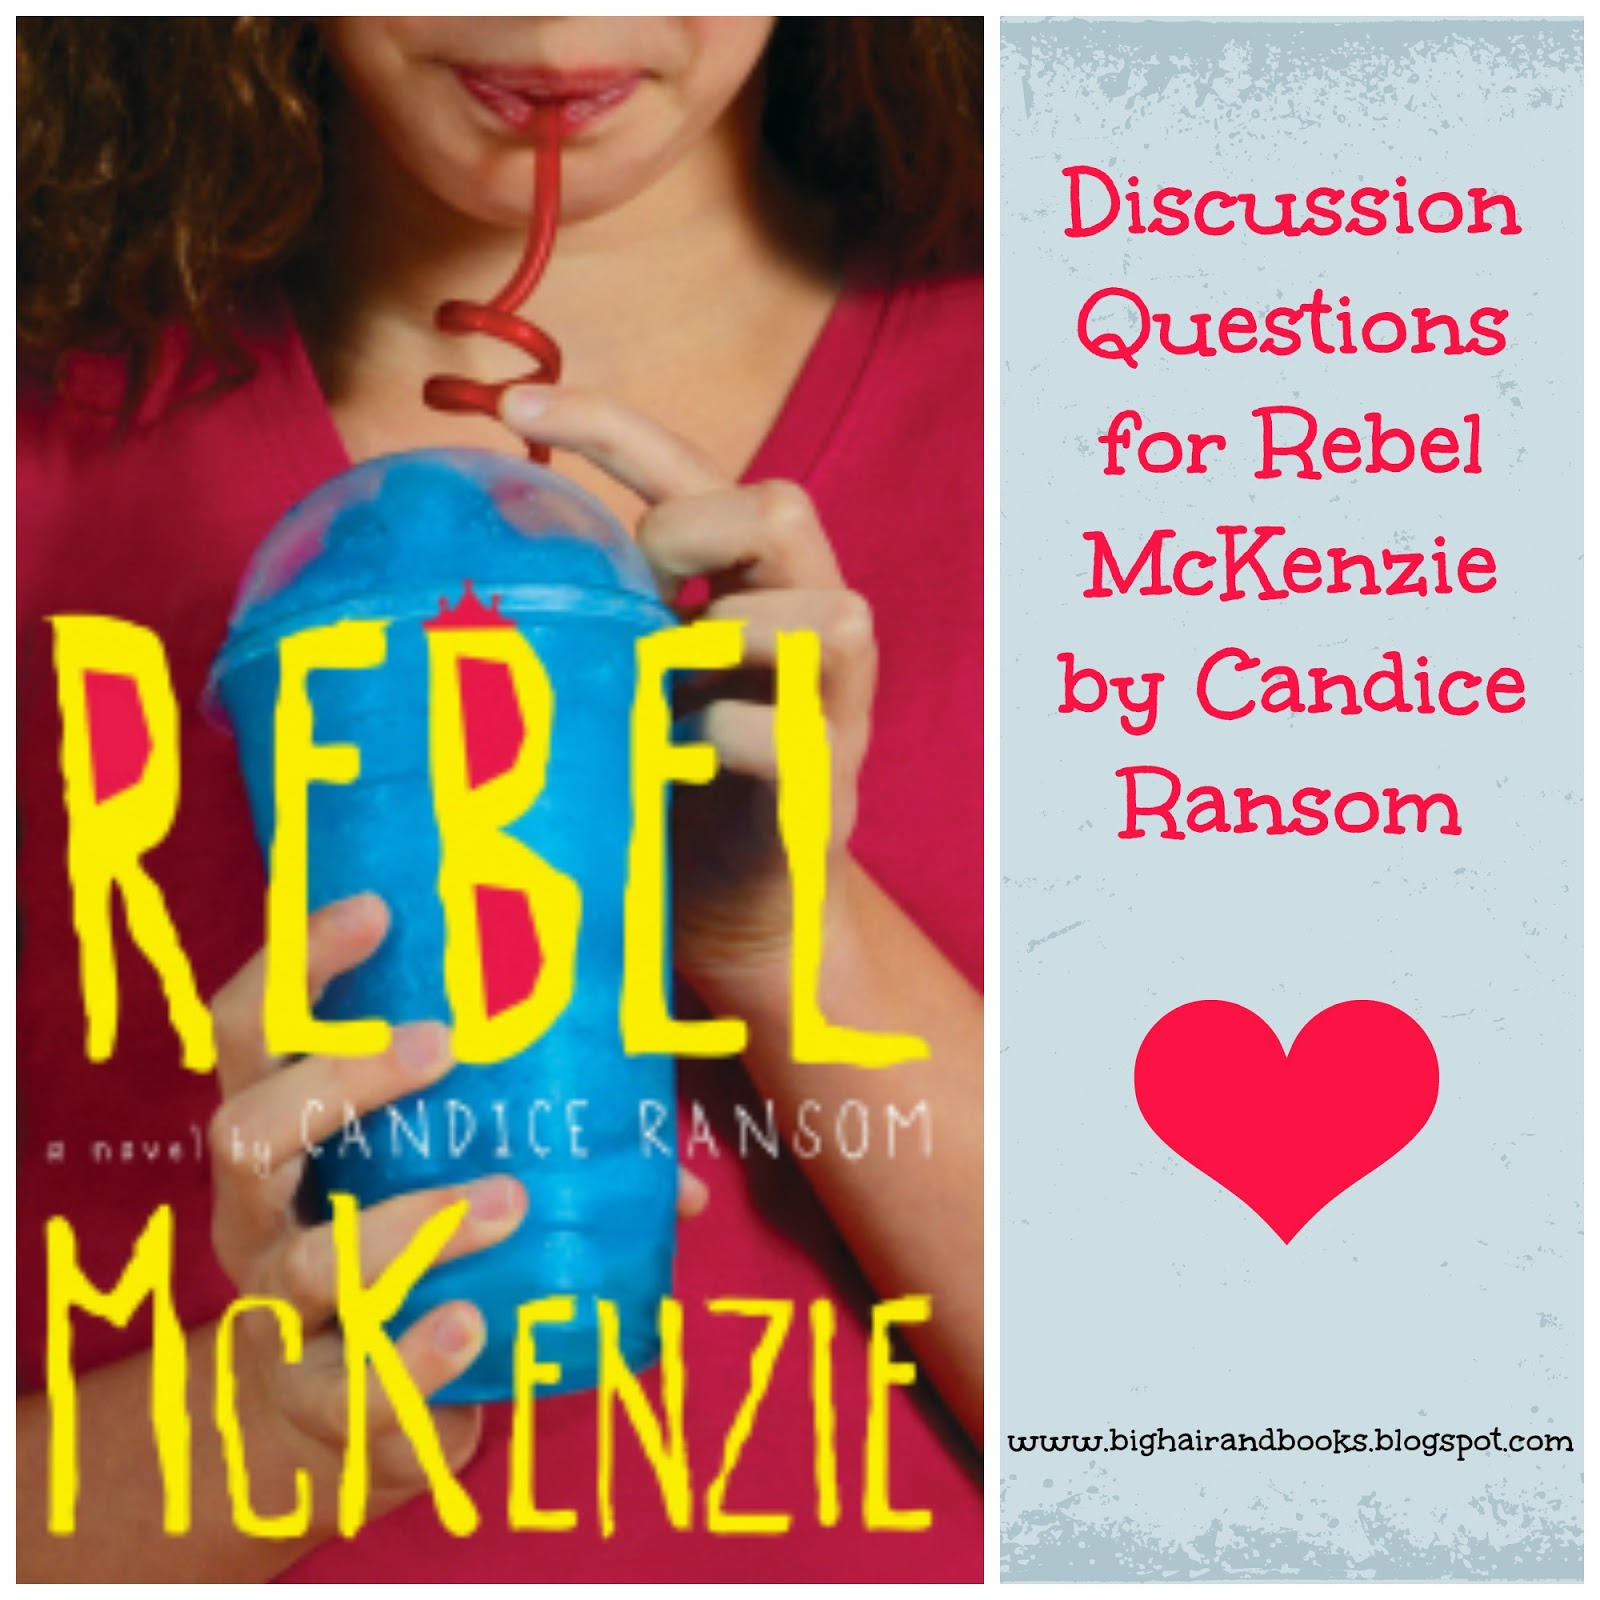 Discussion Questions for Rebel McKenzie